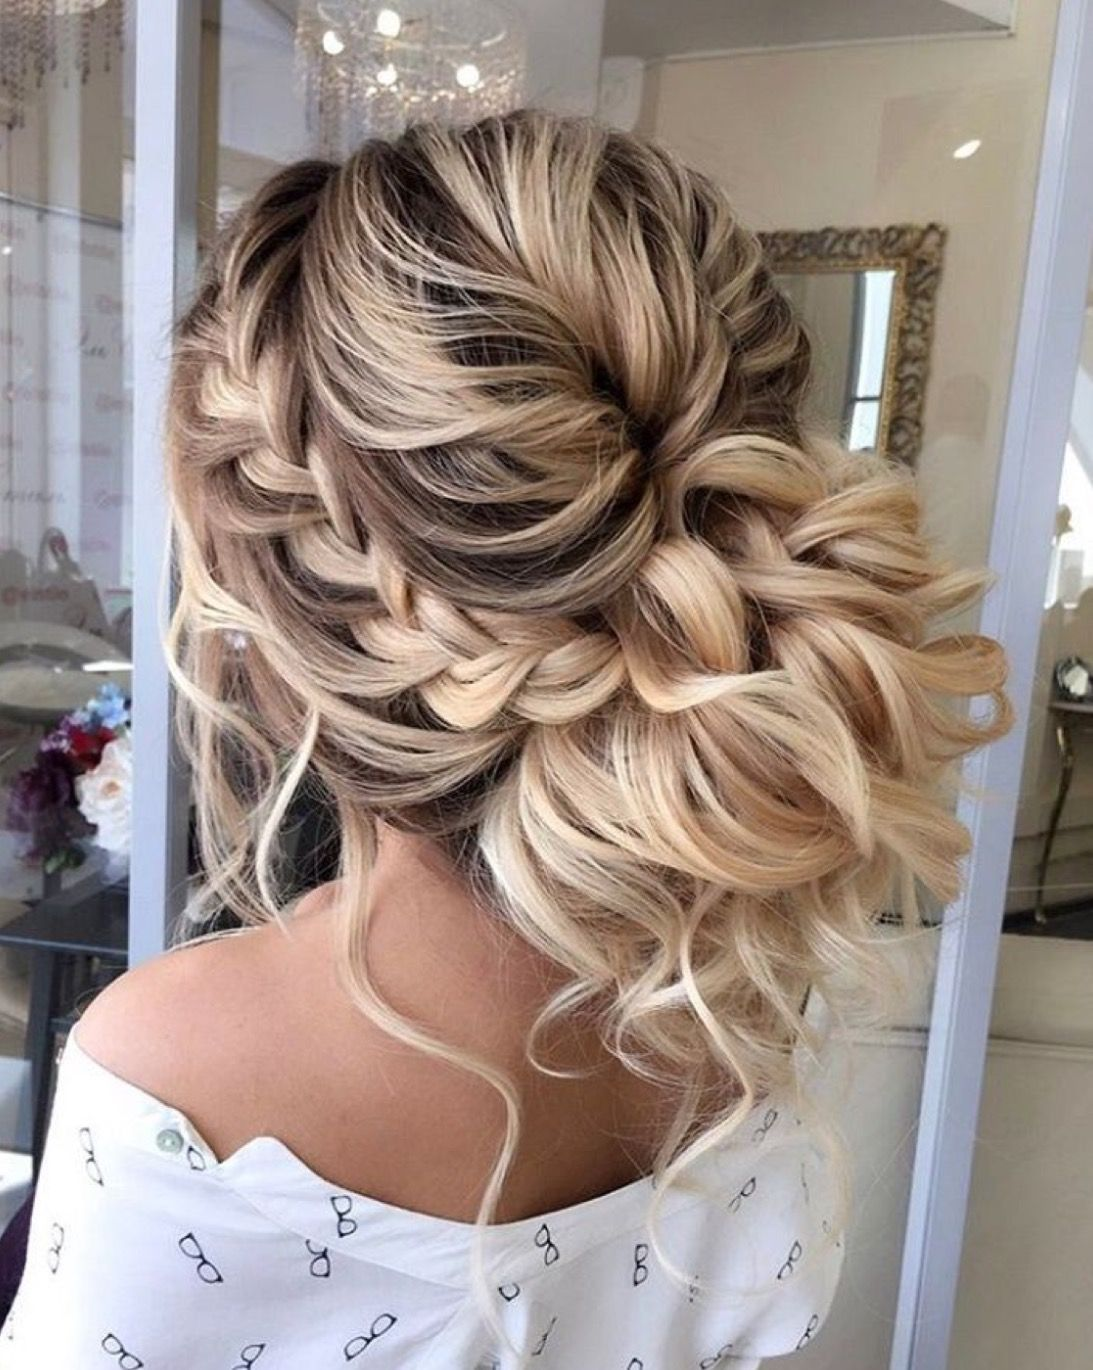 low messy bun updo with curls and a braid-- perfect updo for